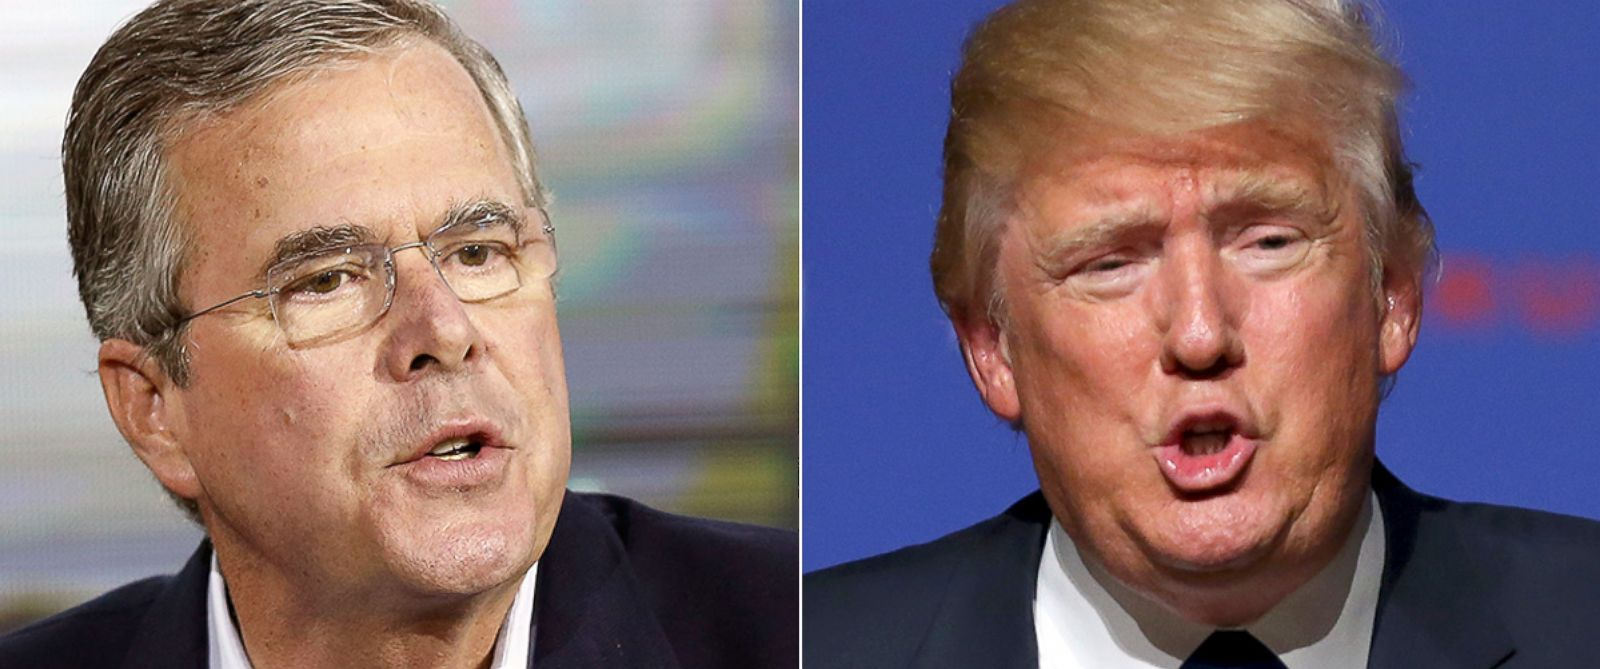 PHOTO: Republican presidential candidate, former Florida Gov. Jeb Bush, left, speaks during an education summit, Aug. 19, 2015, in Londonderry, N.H. Republican presidential candidate businessman Donald Trump speaks in Derry, N.H., Aug. 19, 2015.